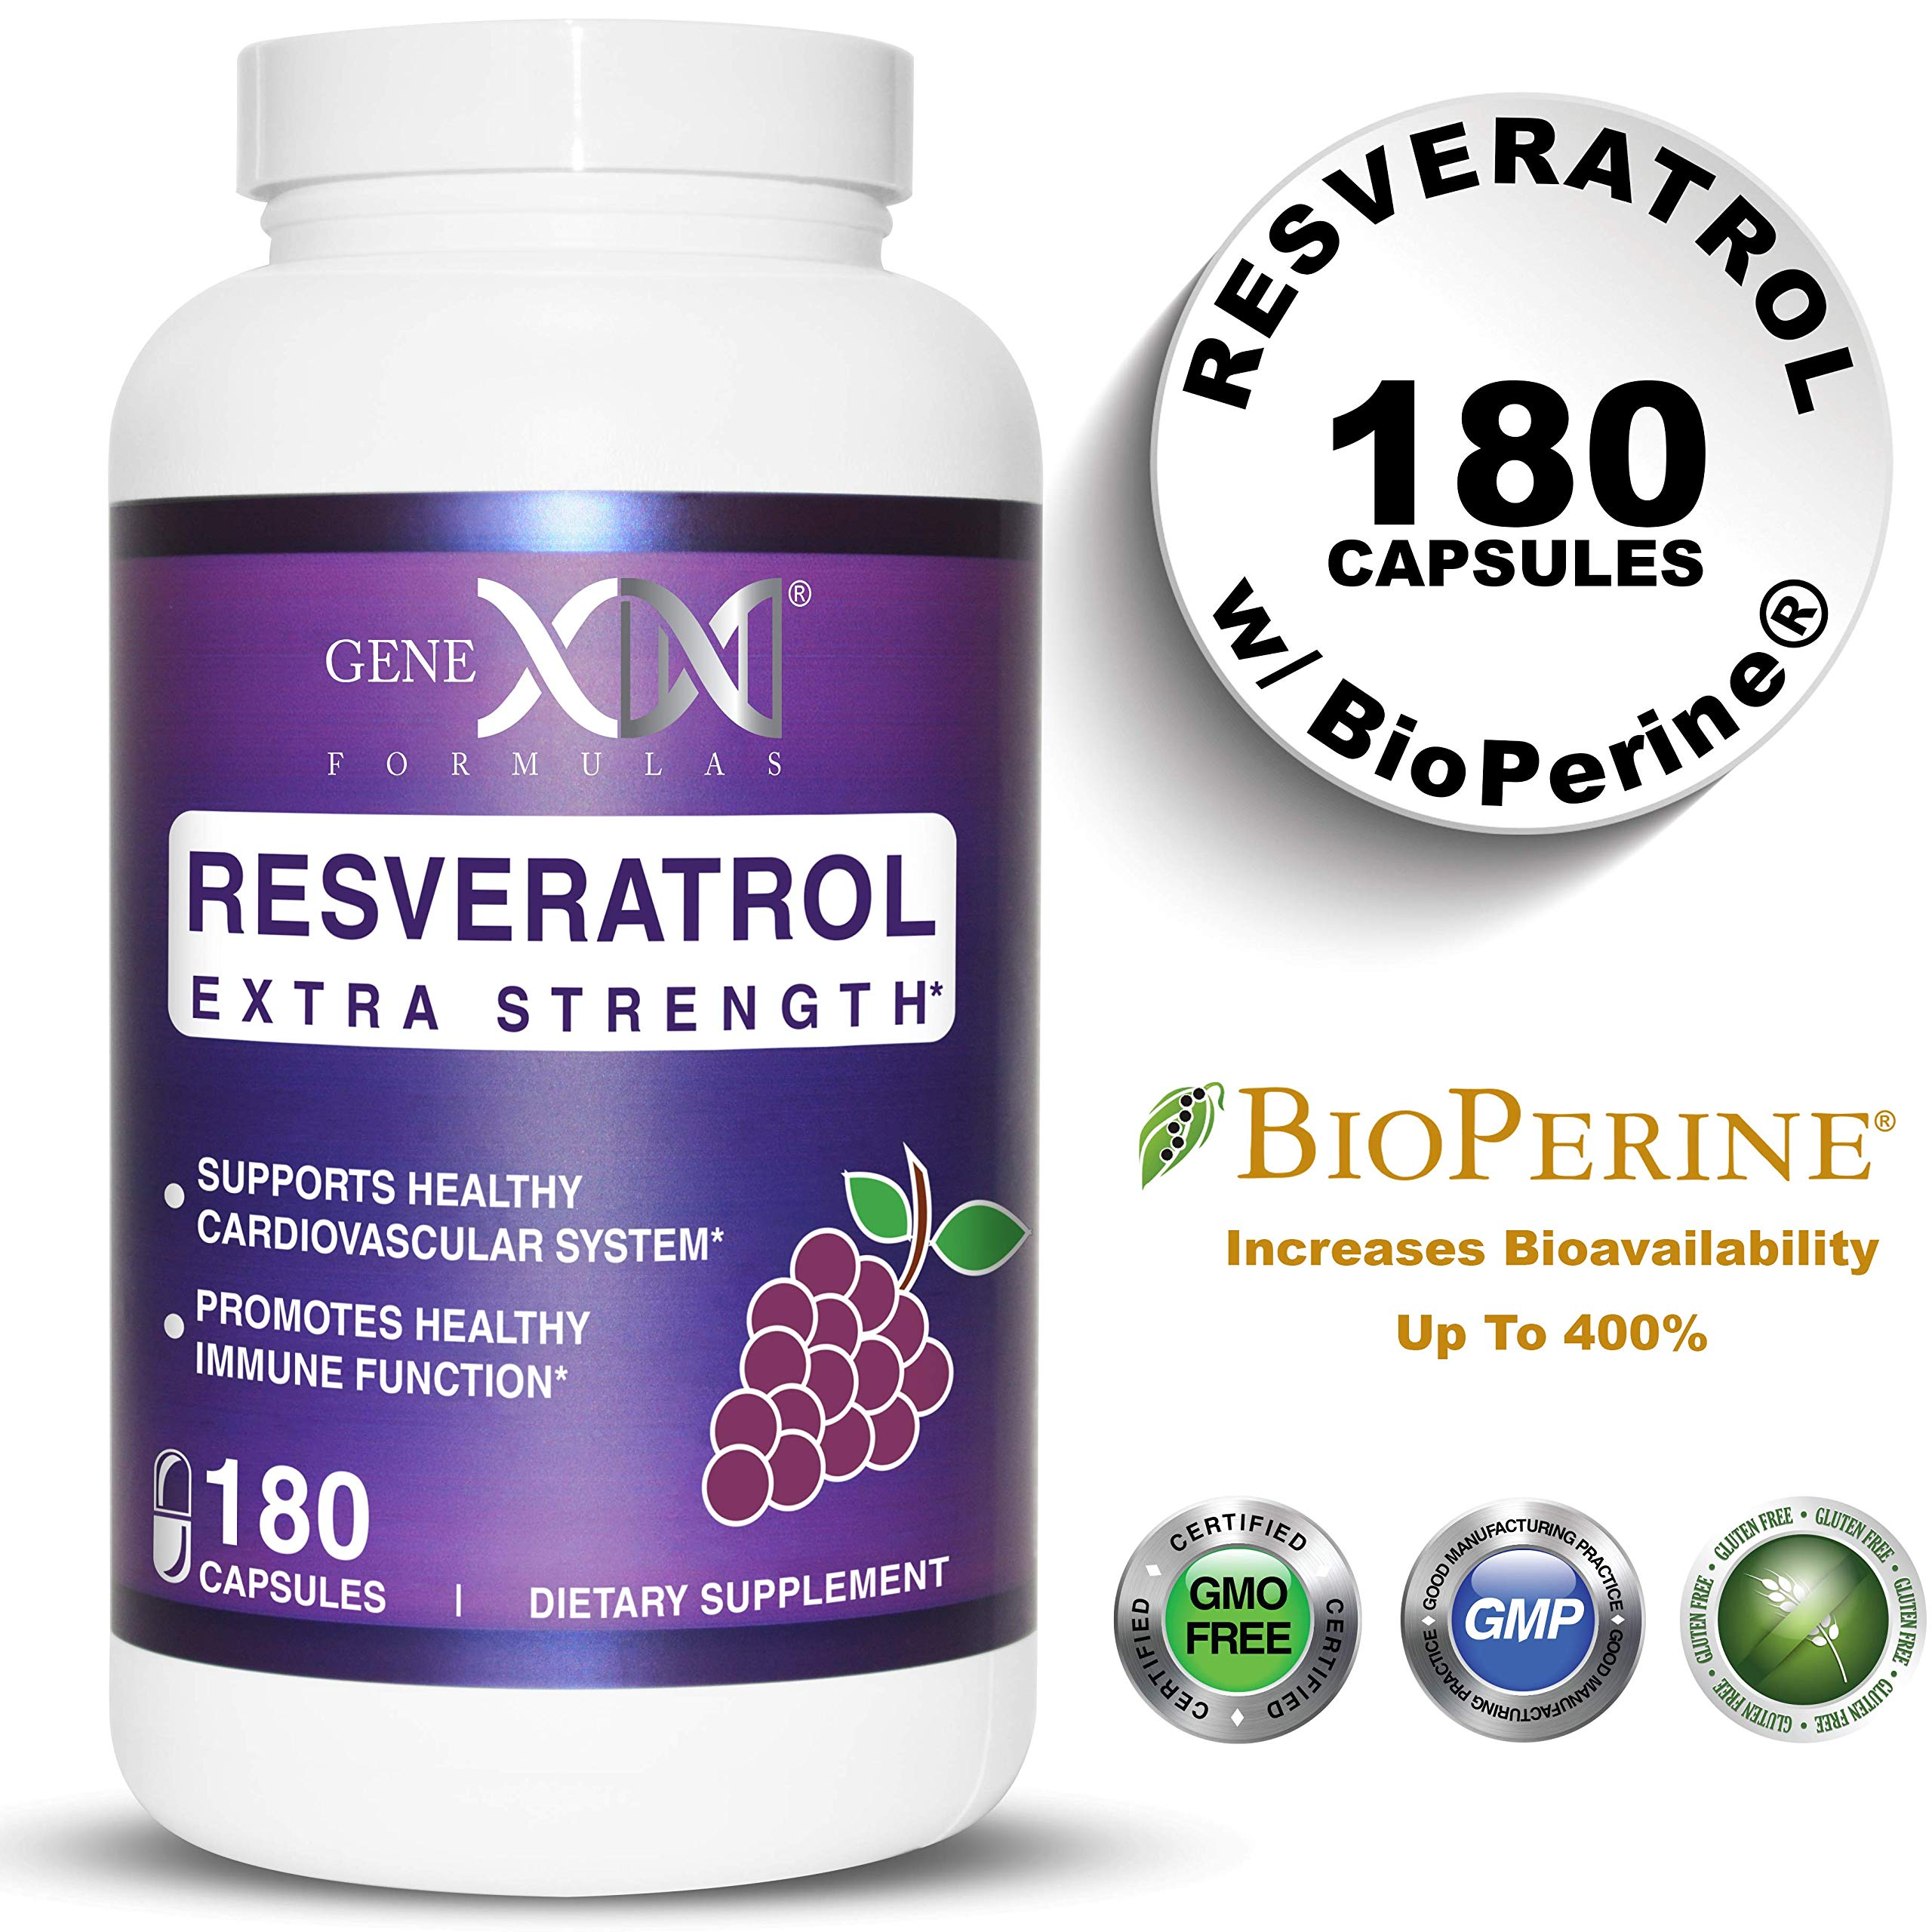 Genex Resveratrol 1000mg Per Serving - Value Size - Max Strength 180 Caps - Antioxidant Supplement Extract | Trans-Resveratrol for Heart Health and Trans Resveratrol for Providing Maximim Benefits